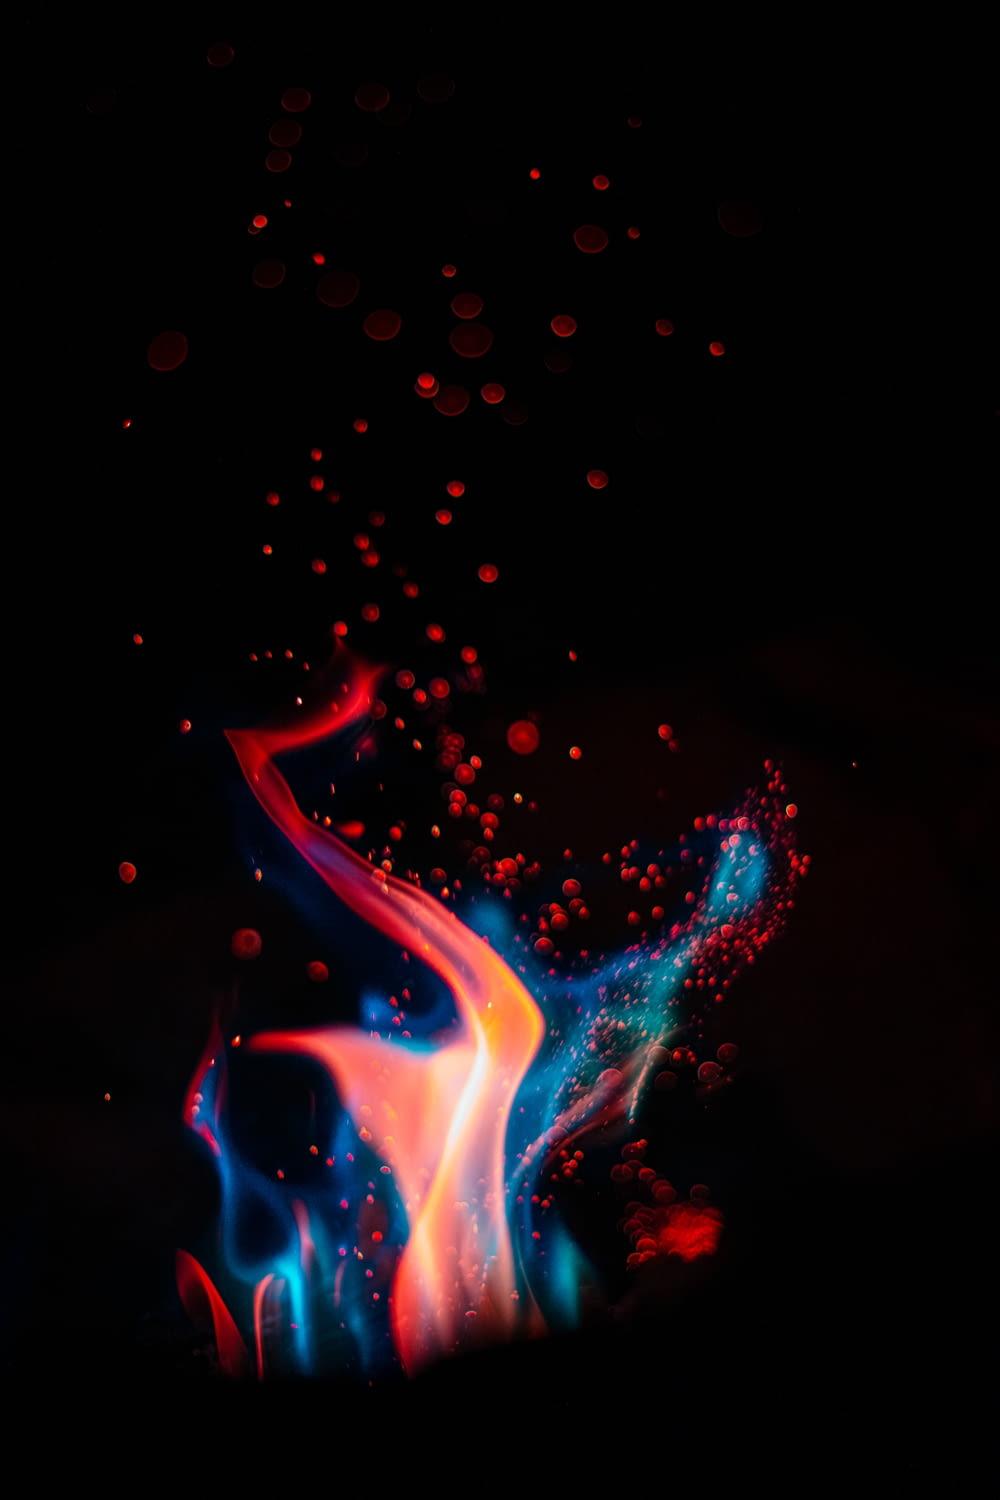 red and blue fire digital wallpaper